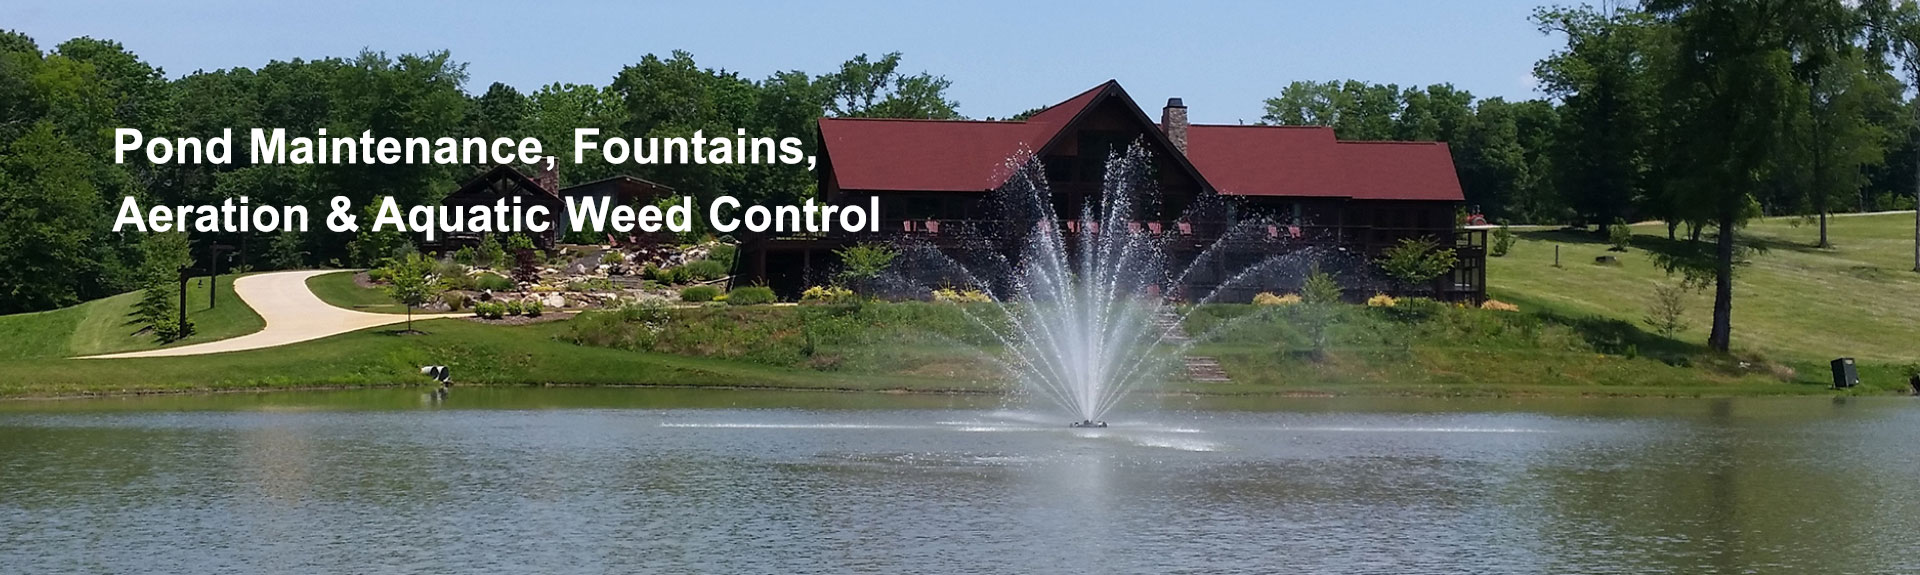 Pond Maintenance, Weed Control, Fountains and Aeration